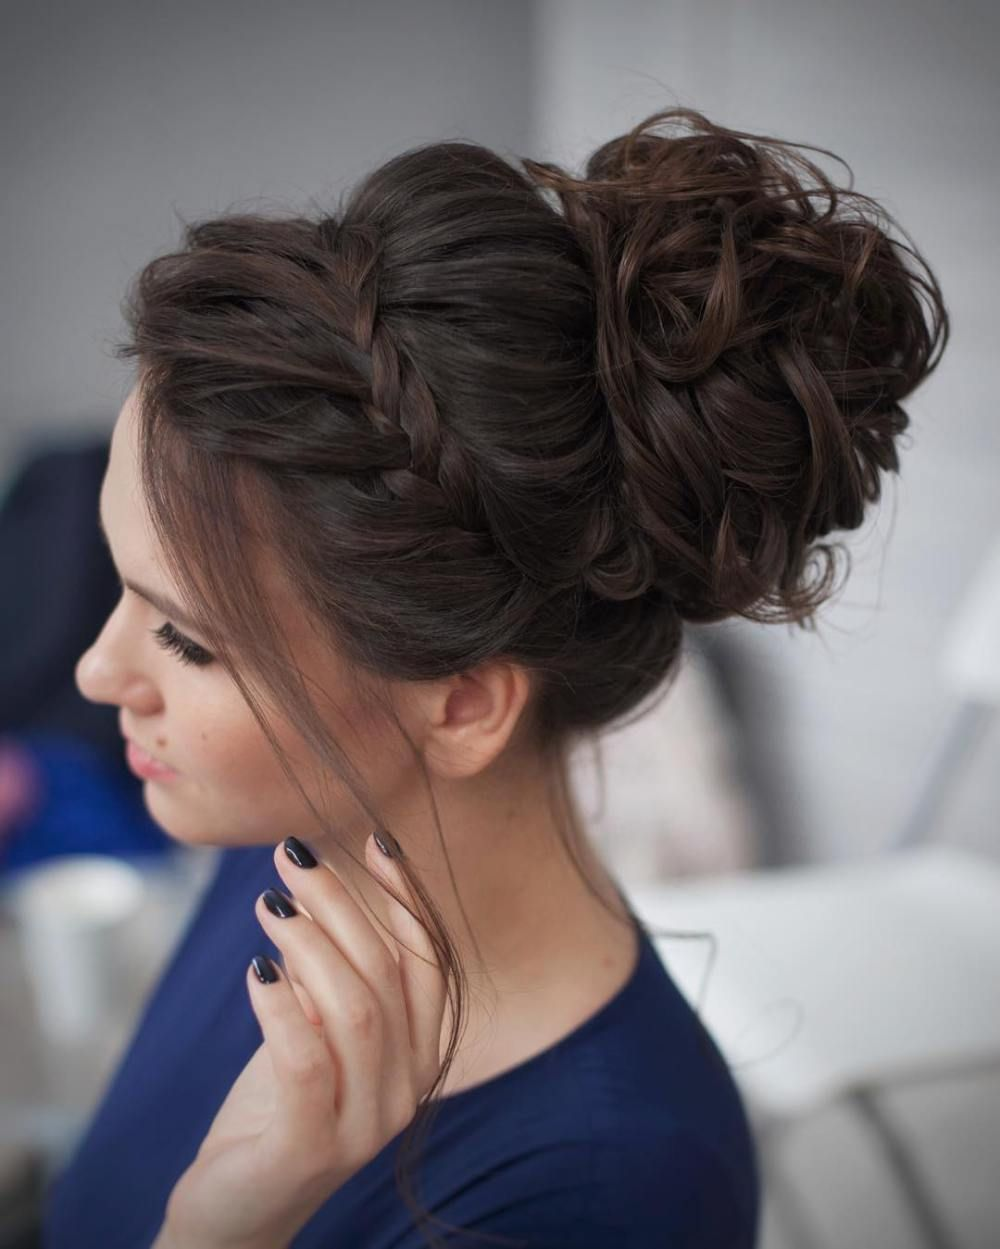 Tremendous Updo Curly Hairstyles For Prom And Edgy Hair On Pinterest Hairstyles For Women Draintrainus